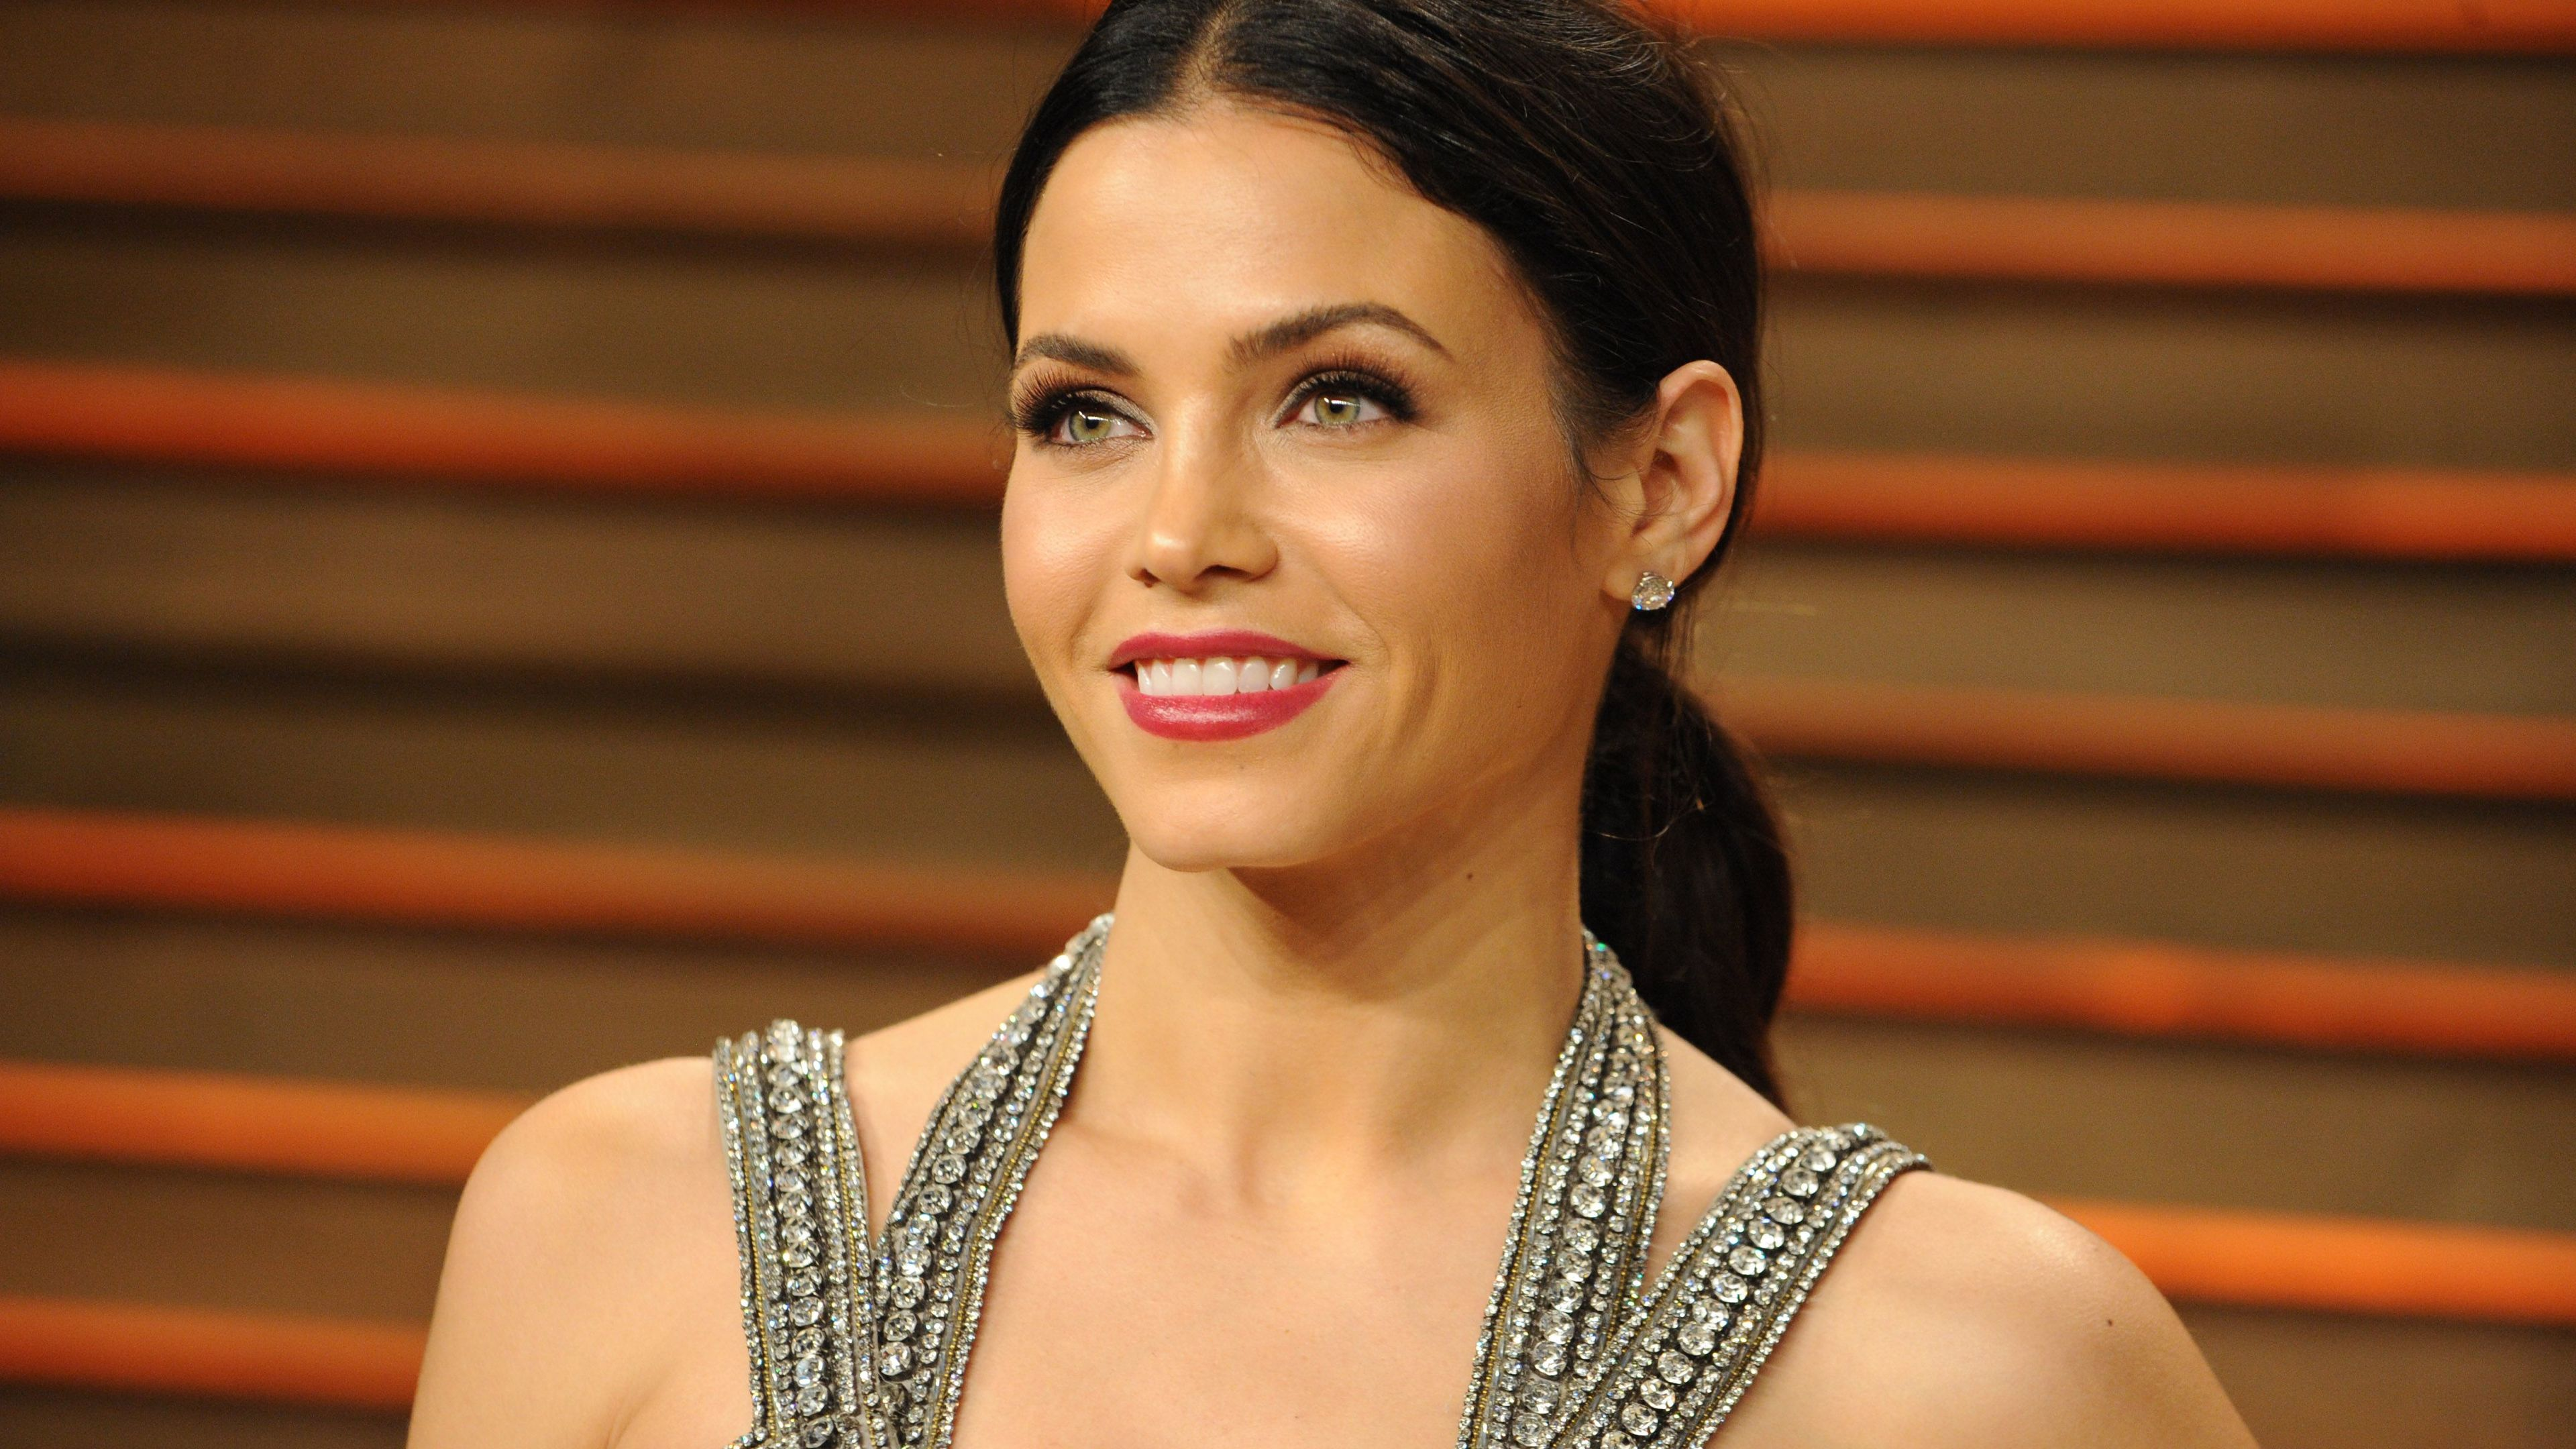 jenna dewan 1536862954 - Jenna Dewan - jenna dewan wallpapers, hd-wallpapers, girls wallpapers, celebrities wallpapers, 4k-wallpapers